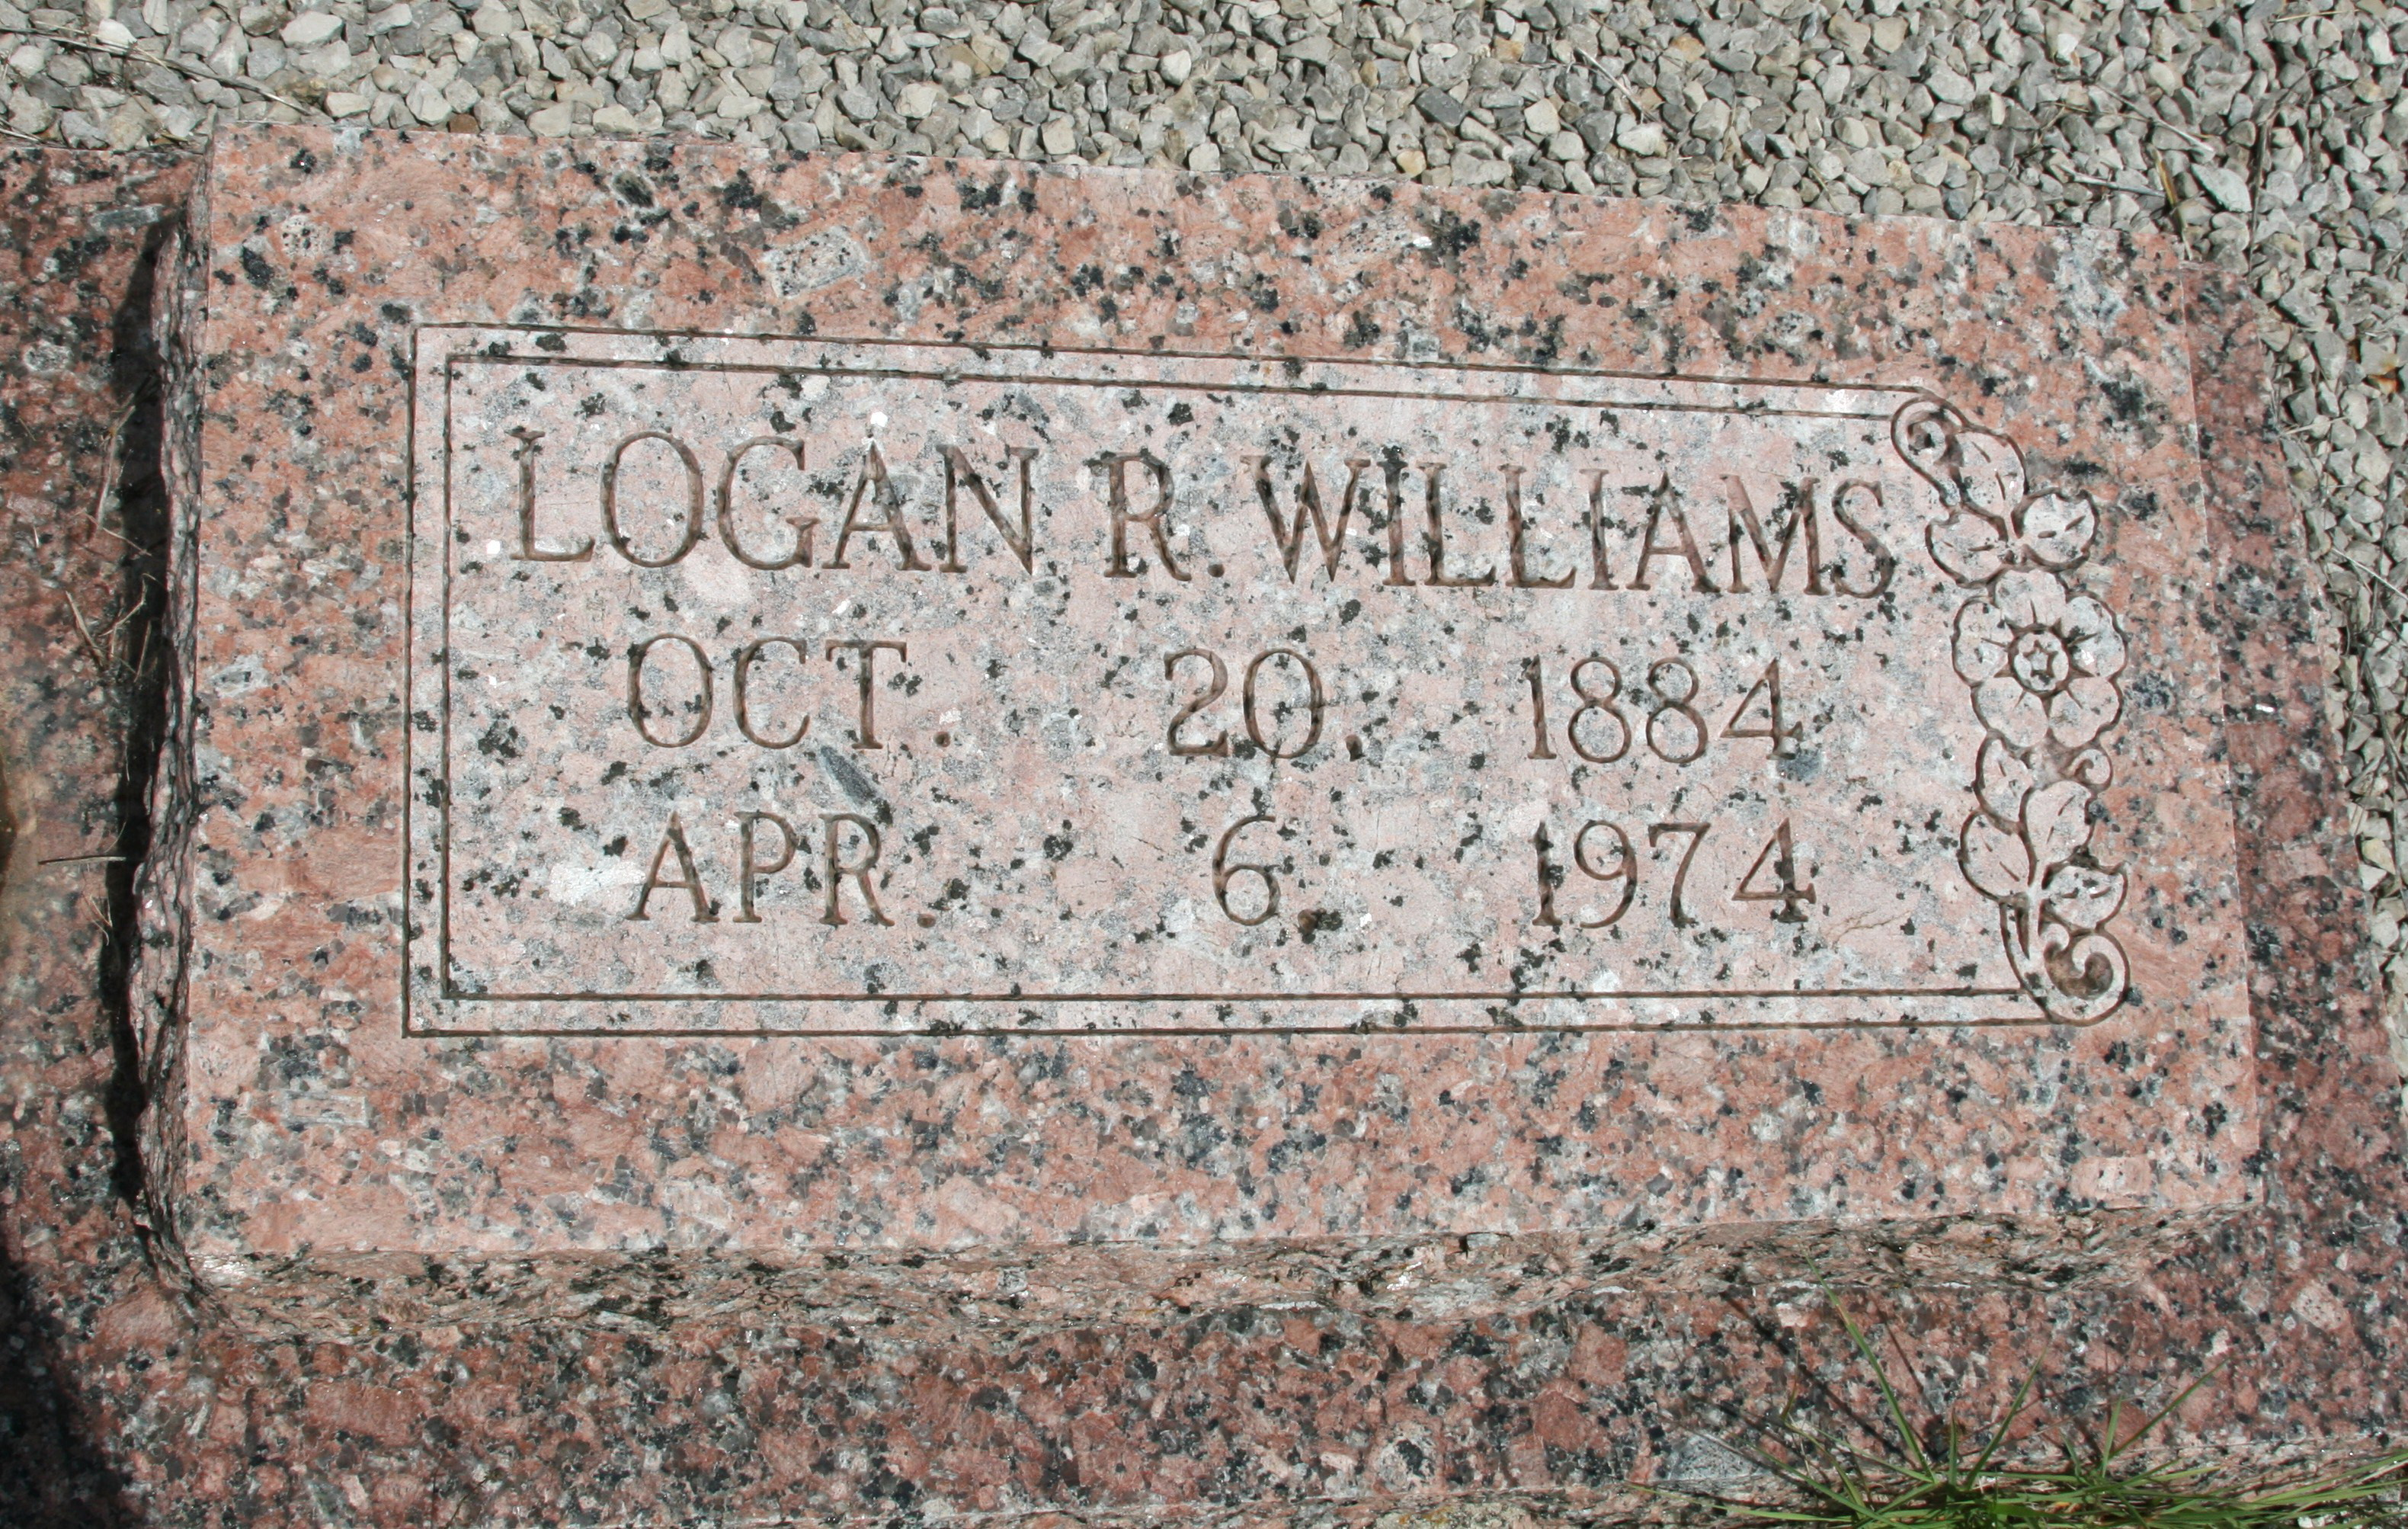 Logan Riley Williams